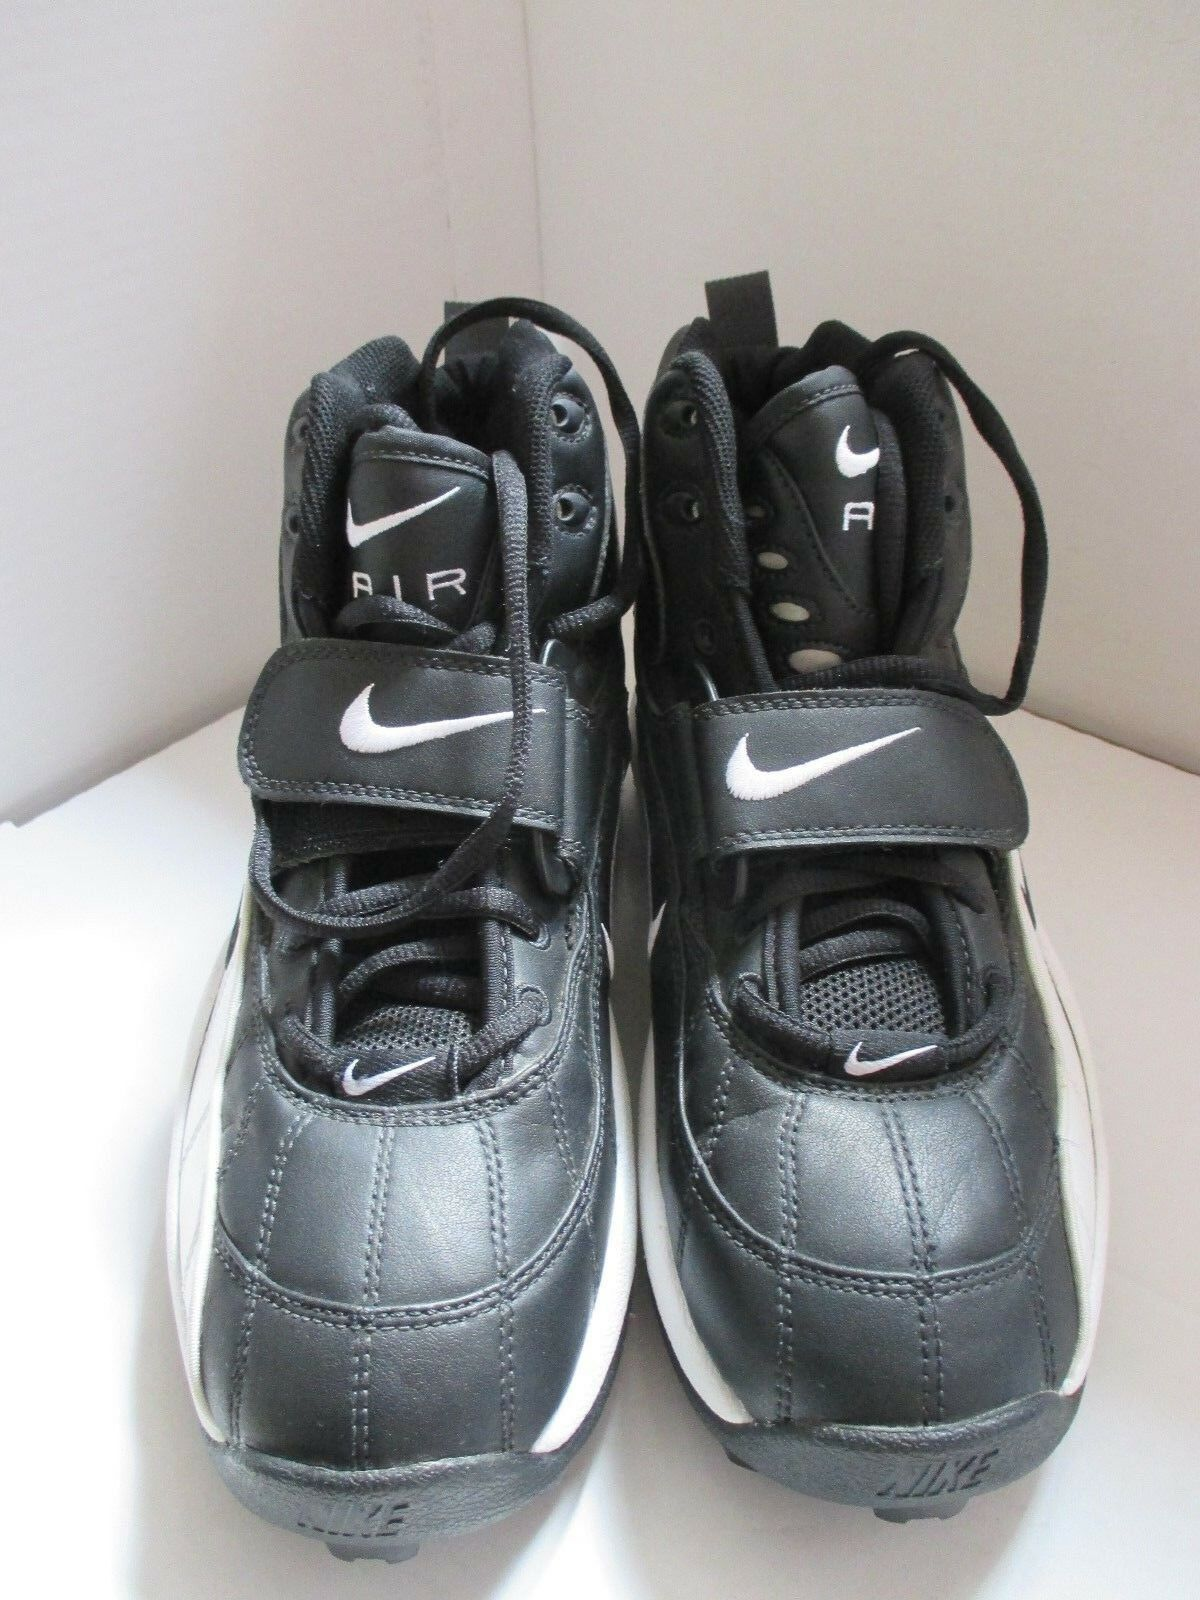 NIKE PROTOTYPE/SAMPLE NIKE AIR FORM SIZE ZM ZOOM HI-TOPS  SIZE FORM 9 UNUSED ONE OF A KIND 799766